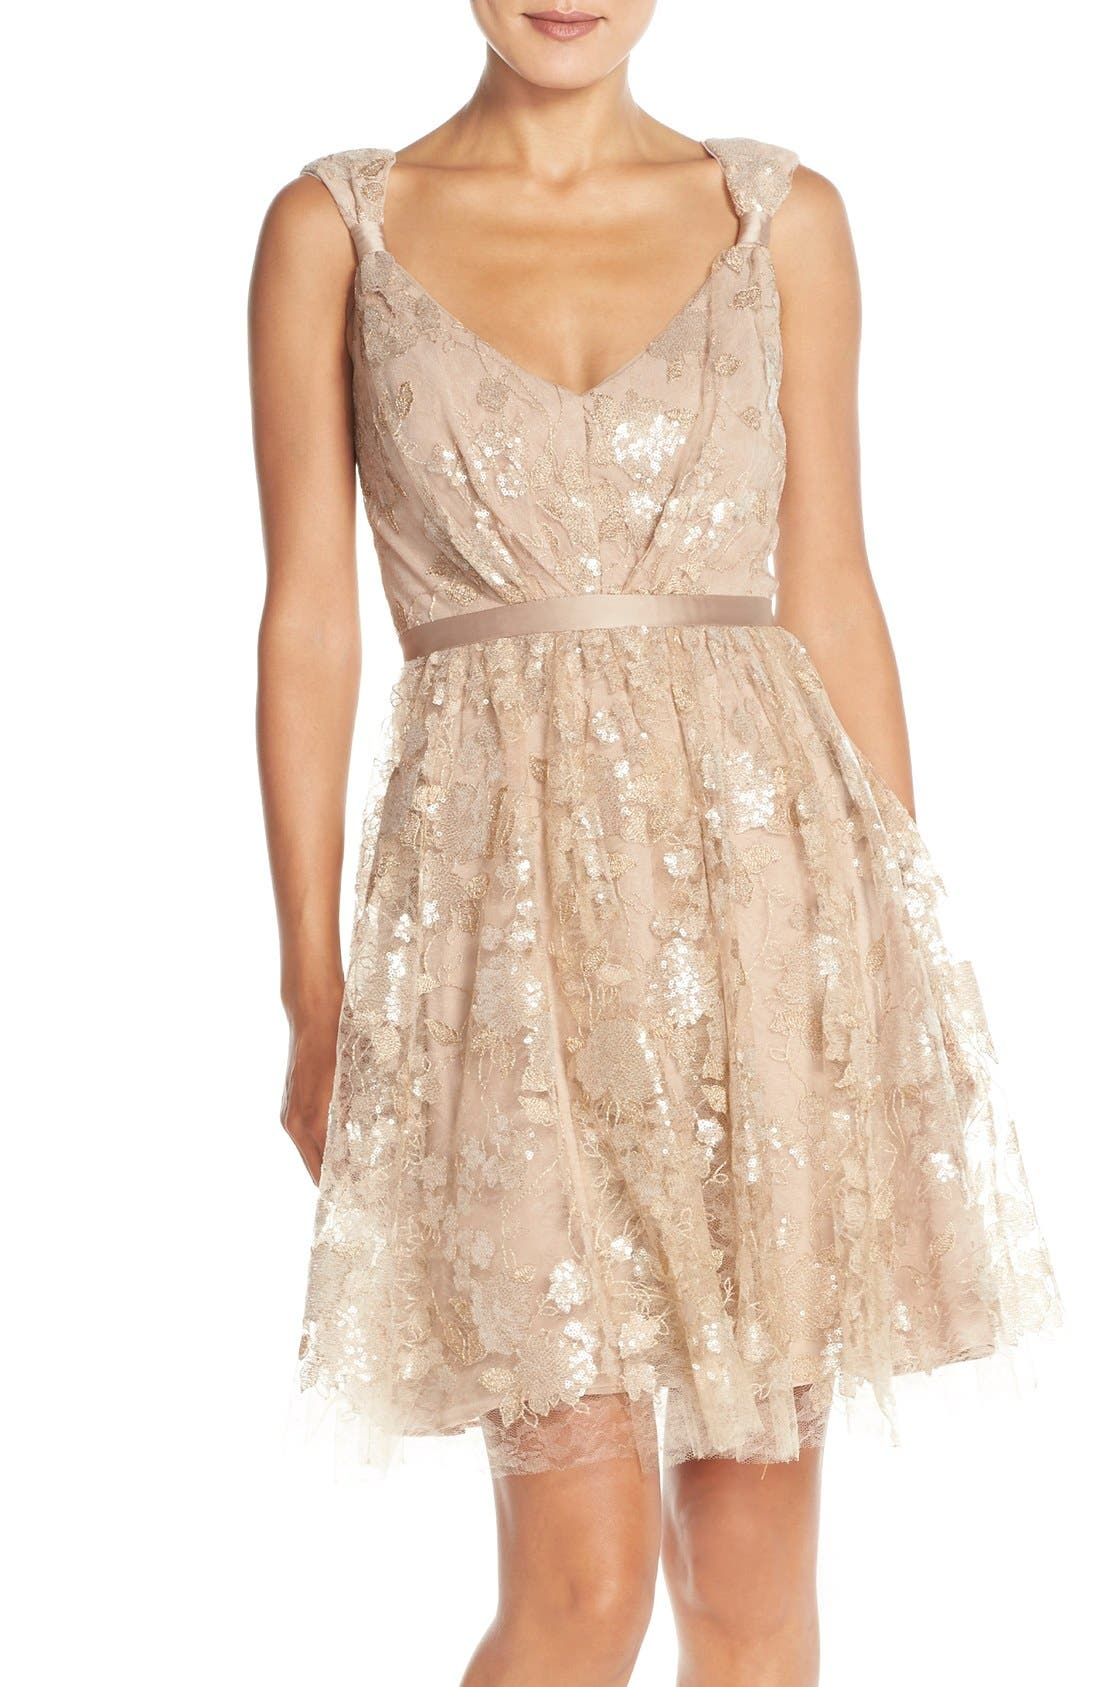 Alternate Image 1 Selected - Vera Wang Lace & Sequin Sleeveless Fit & Flare Dress